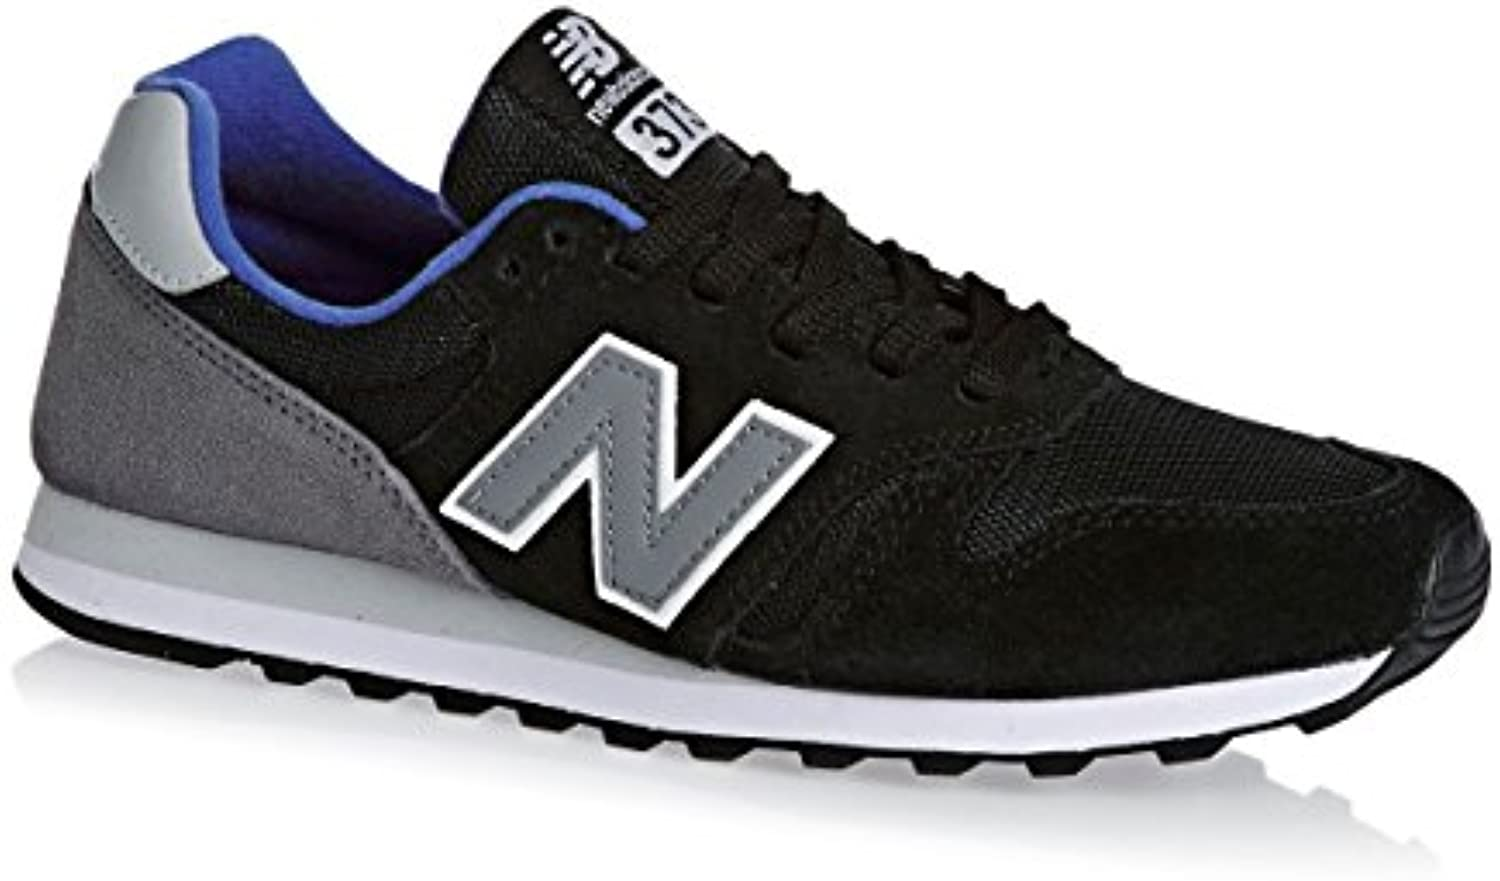 New Balance Herren Sneaker ML373 521261 60 Black 37